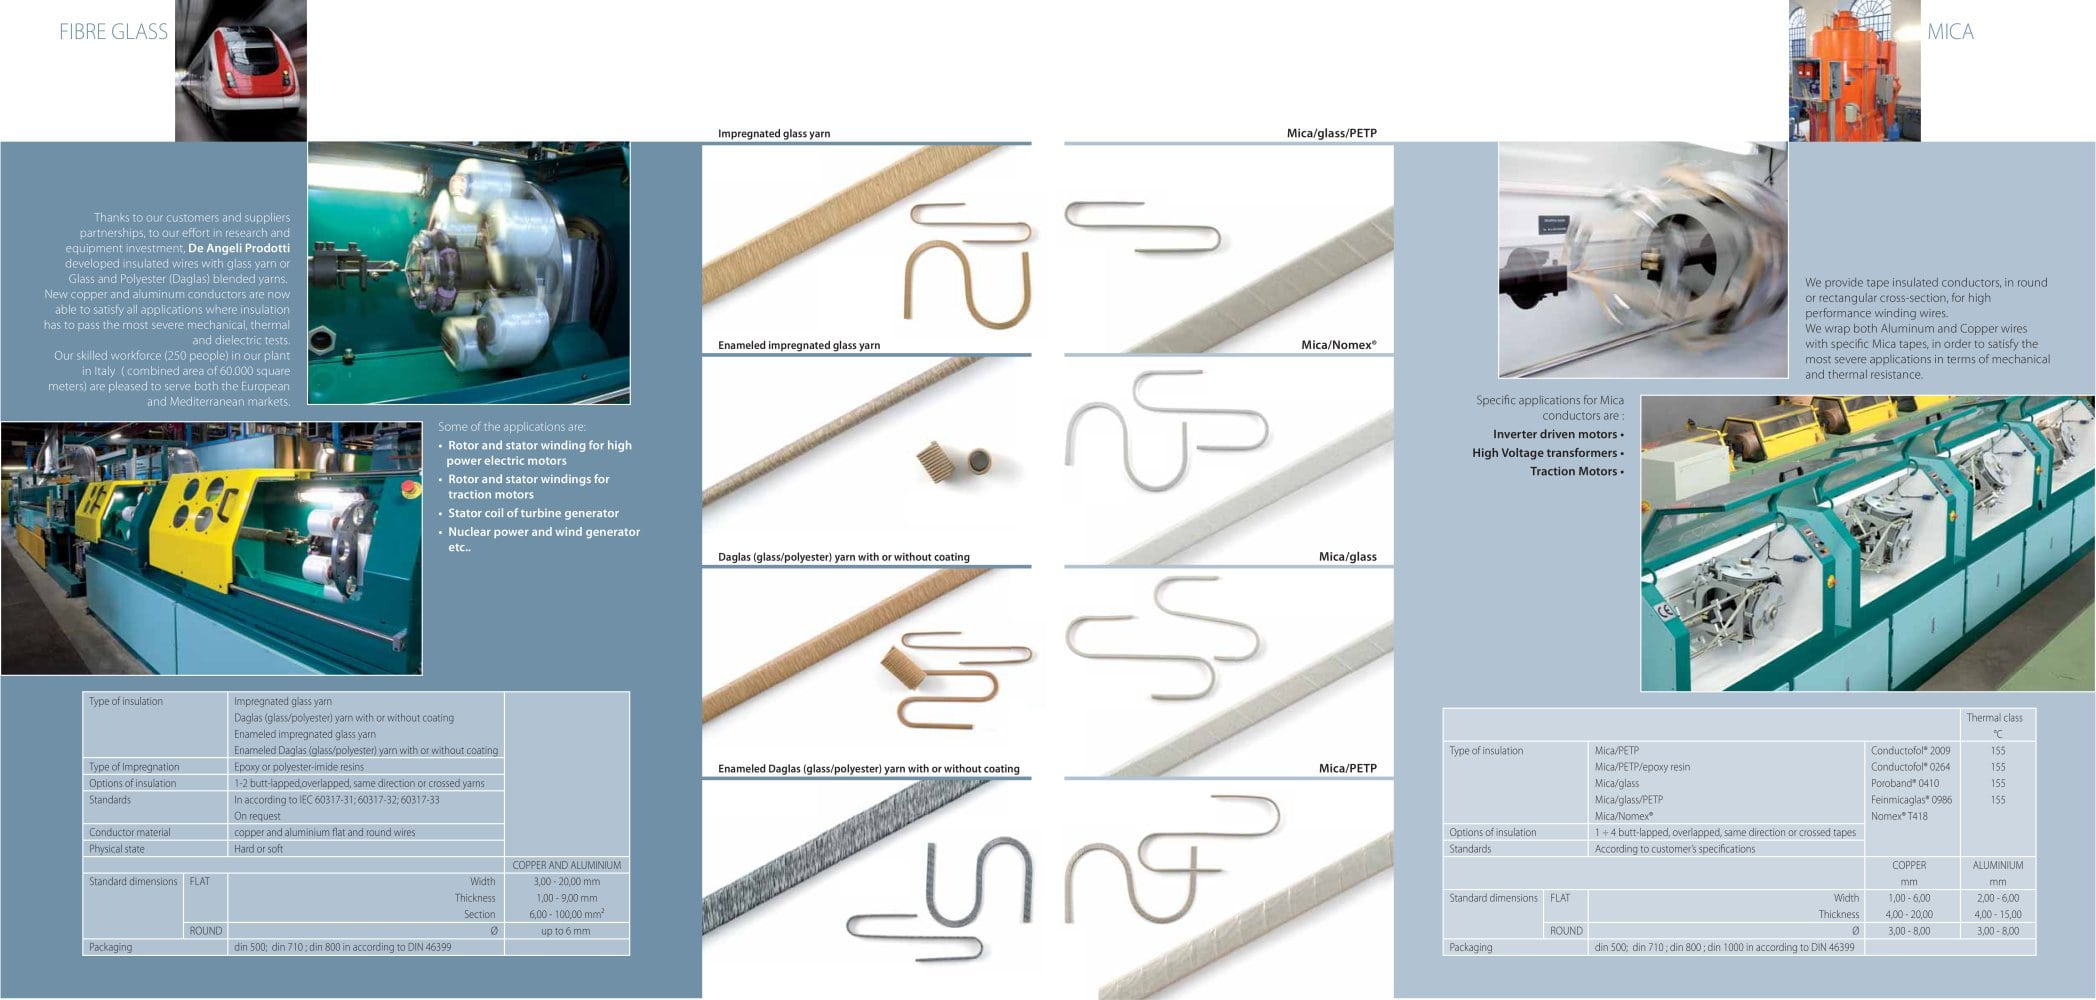 High Performance Fibre Glass Insulated Winding Wires - De Angeli ...